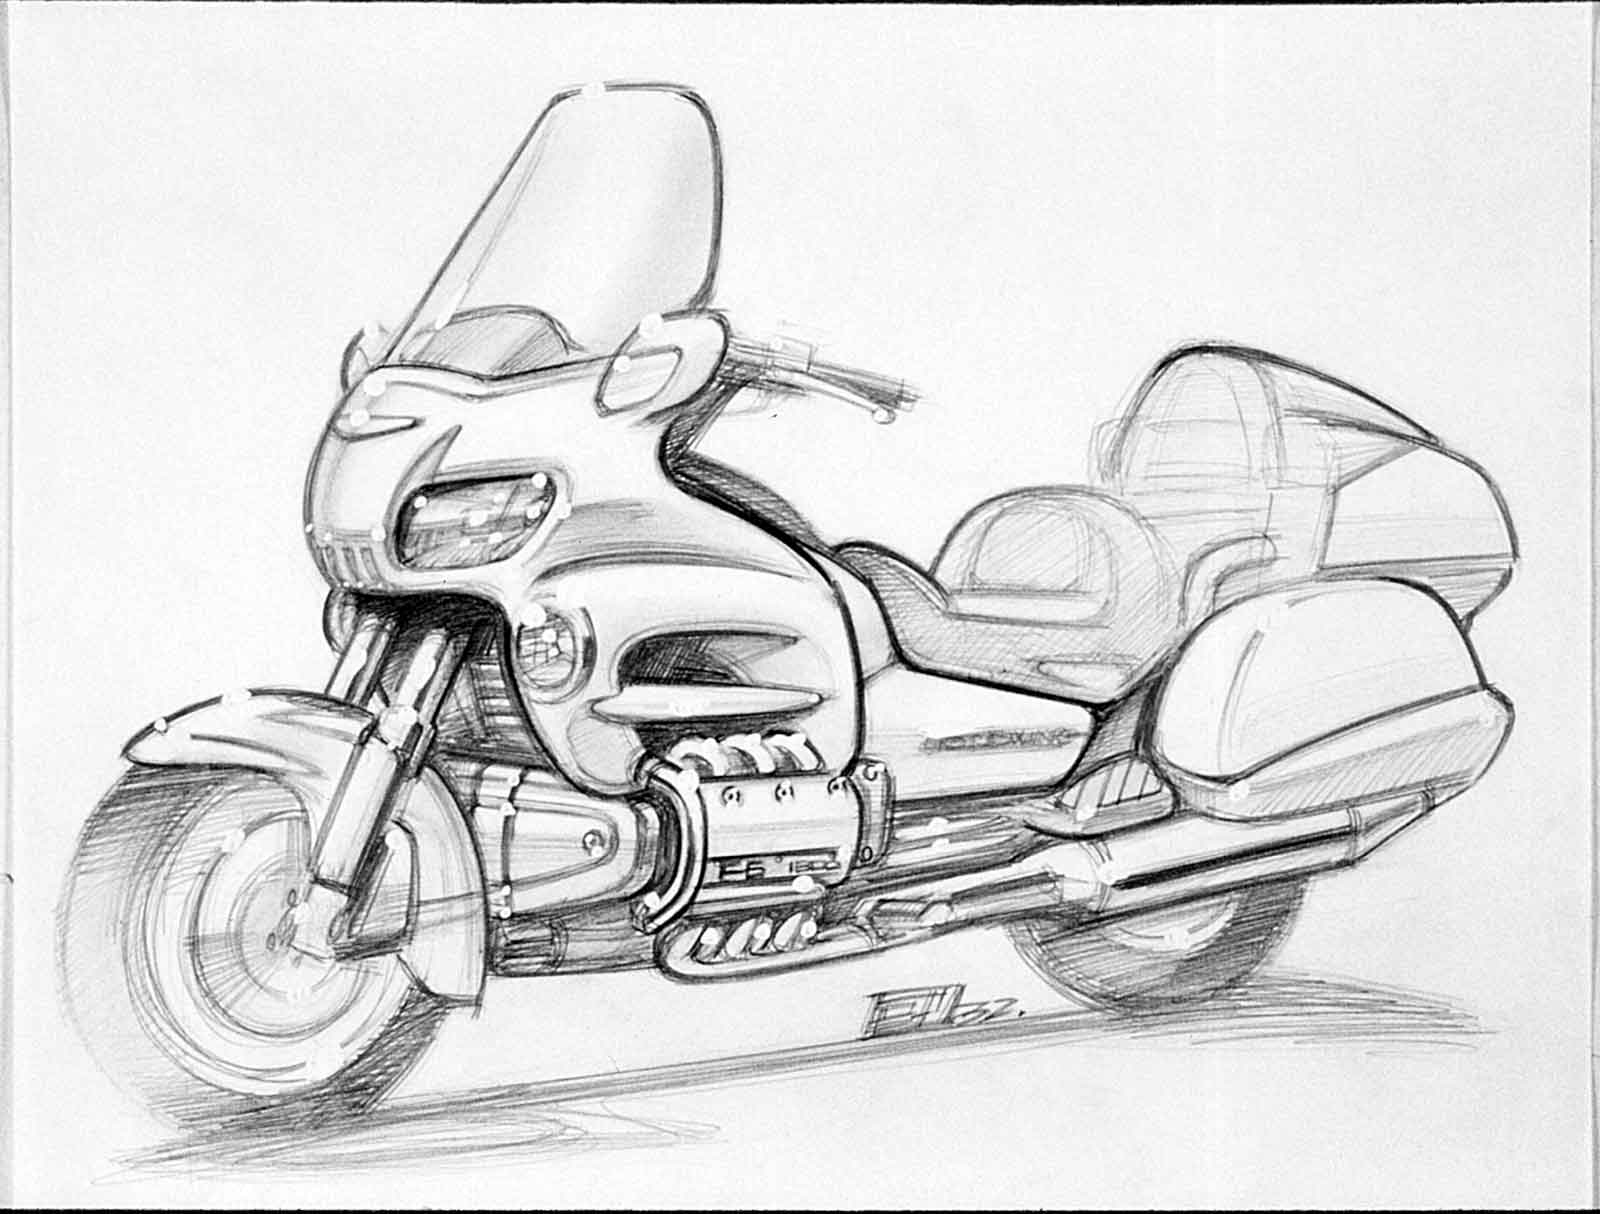 Honda-2001-Gold-Wing-concept-sketch-B